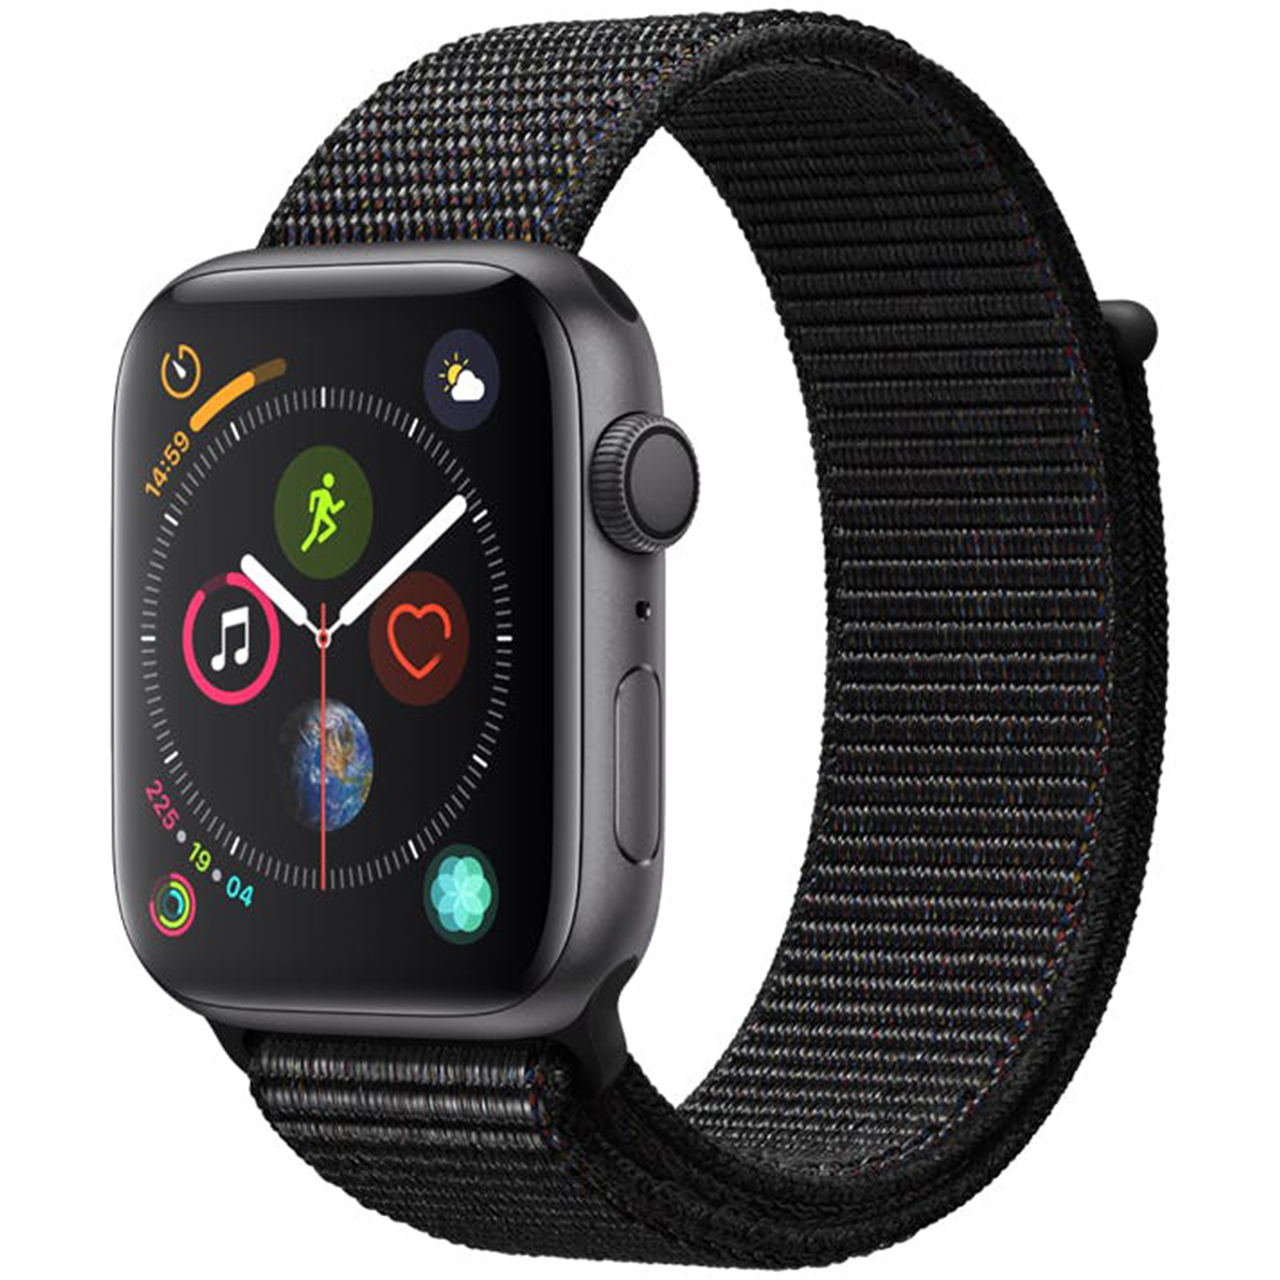 ساعت هوشمند اپل واچ سری 4 مدل 44mm Space Gray Aluminum Case With Black Sport Loop